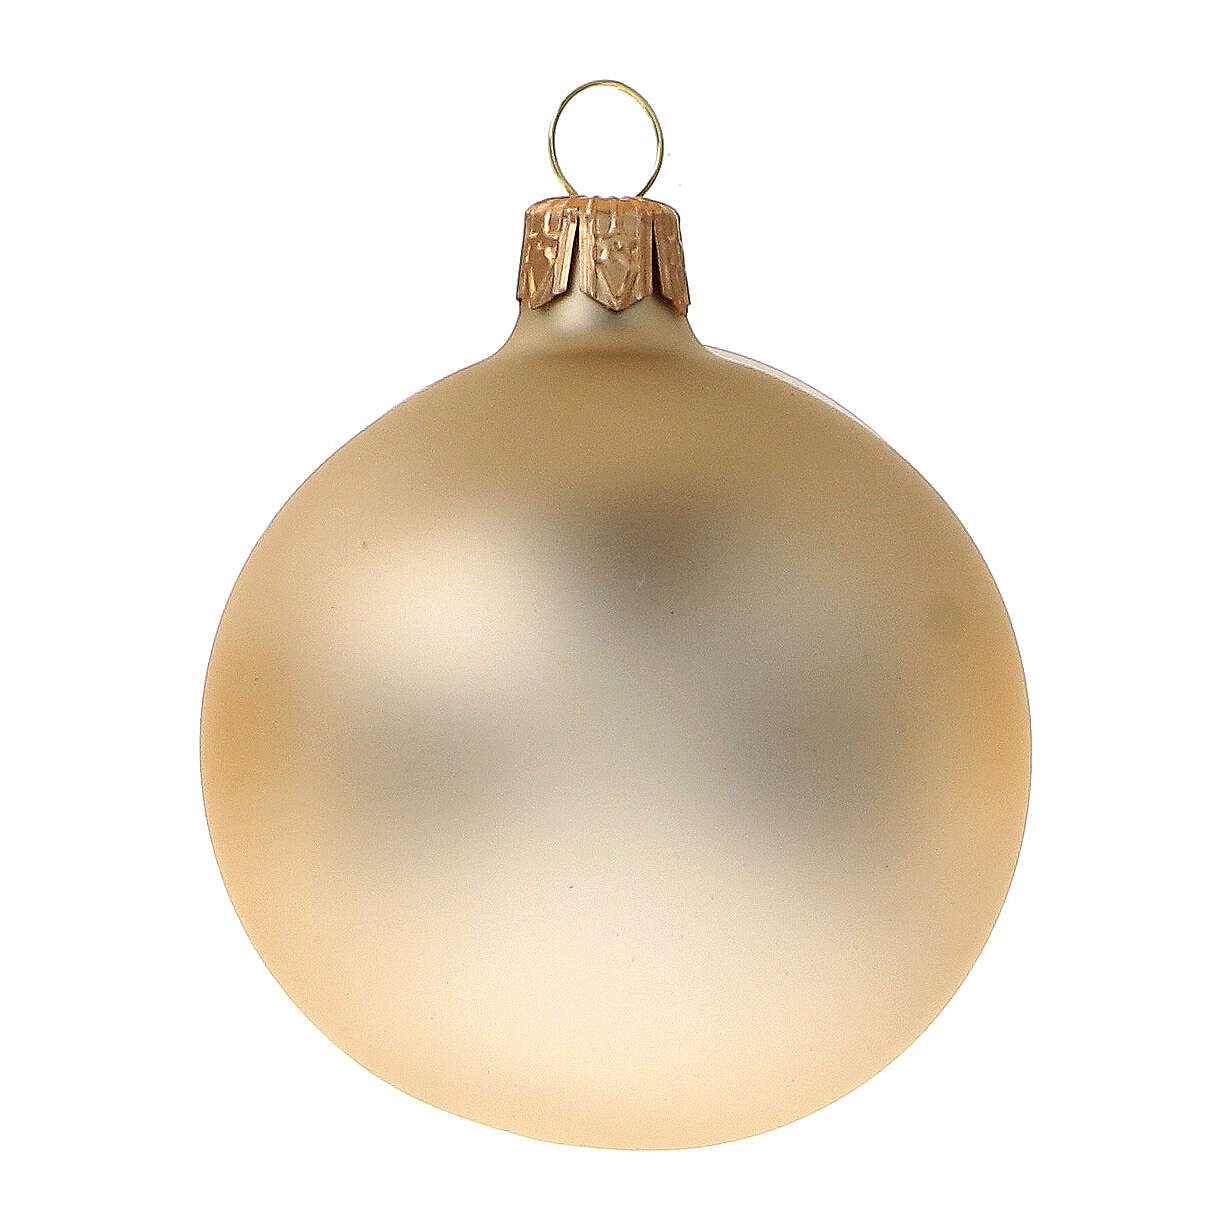 Gold Christmas balls 60 mm diameter matte blown glass 6 pcs 4